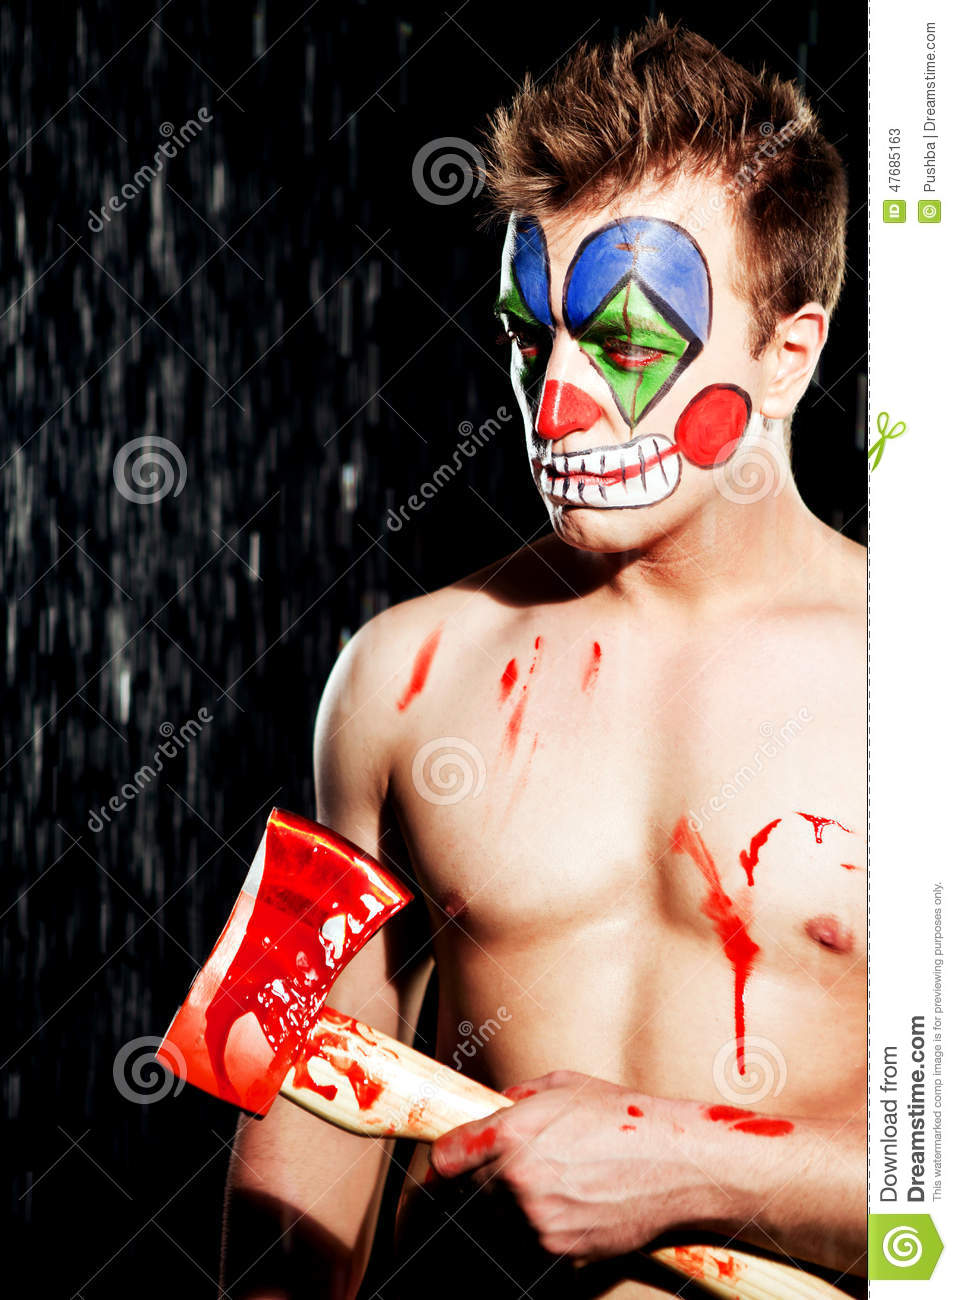 Young man in clown makeup stock image. Image of clown